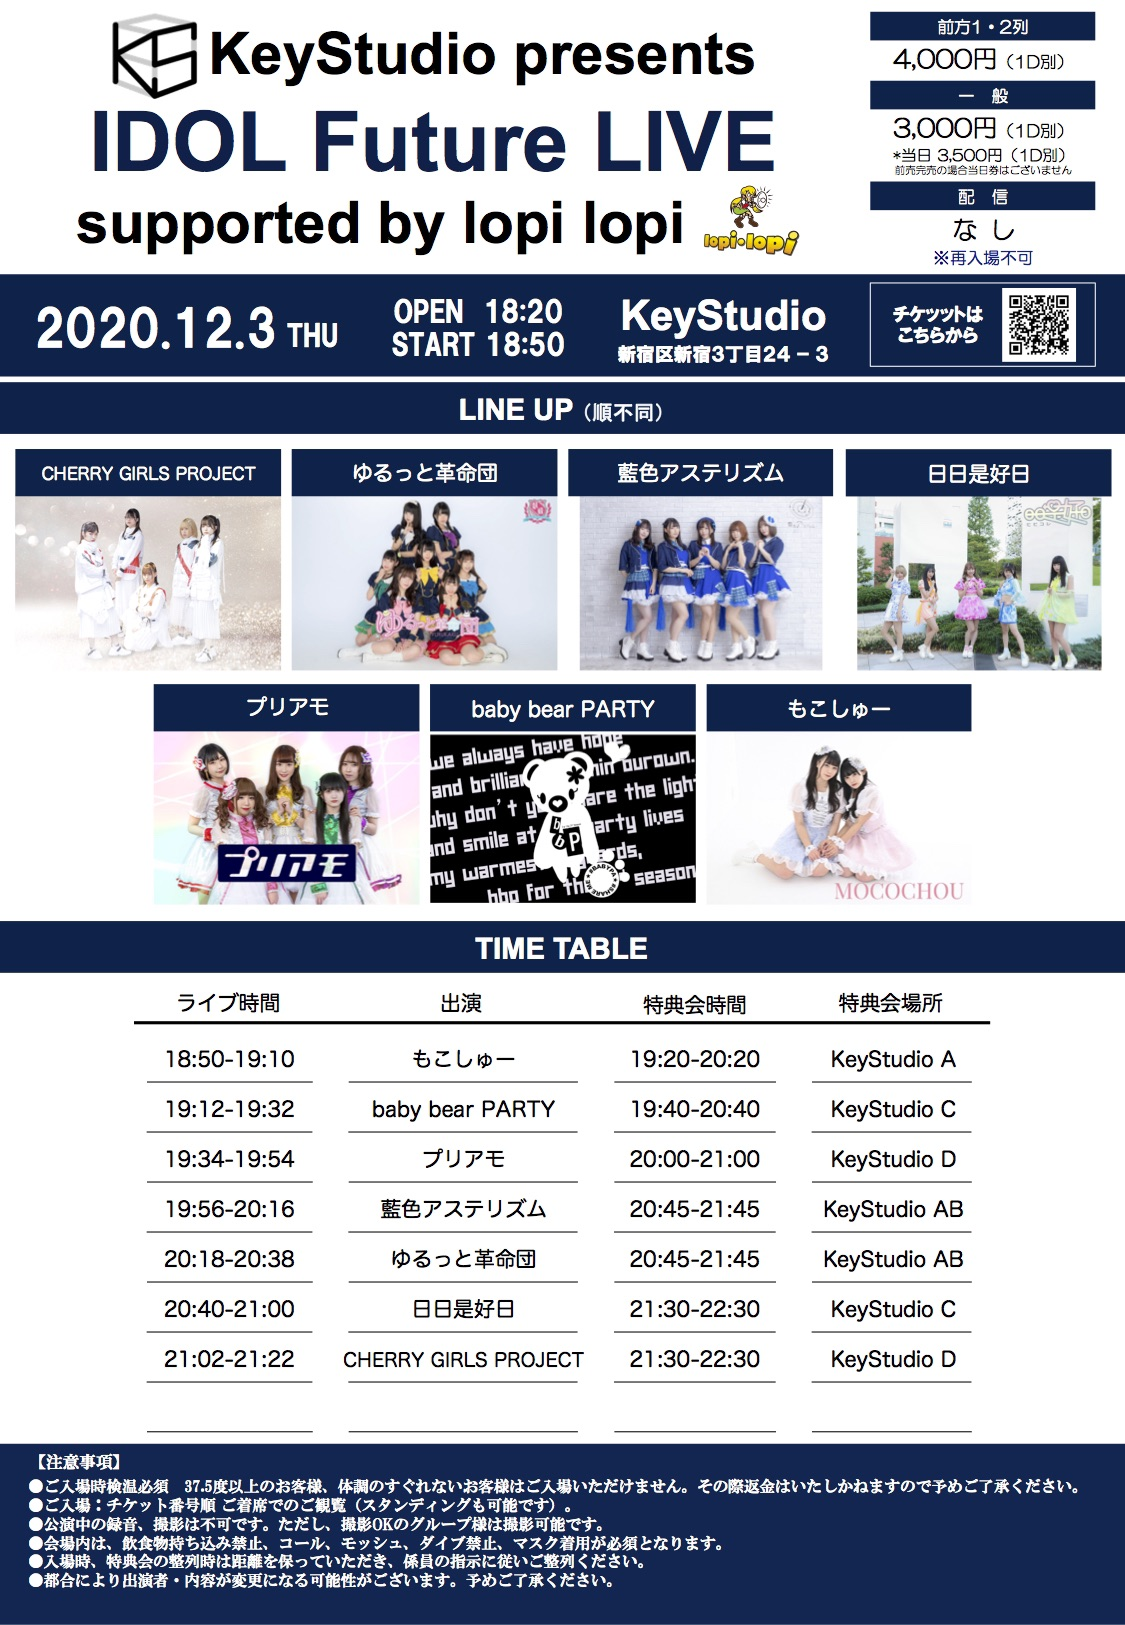 KeyStudio Presents IDOL Future LIVE 1203 supported by lopi lopi